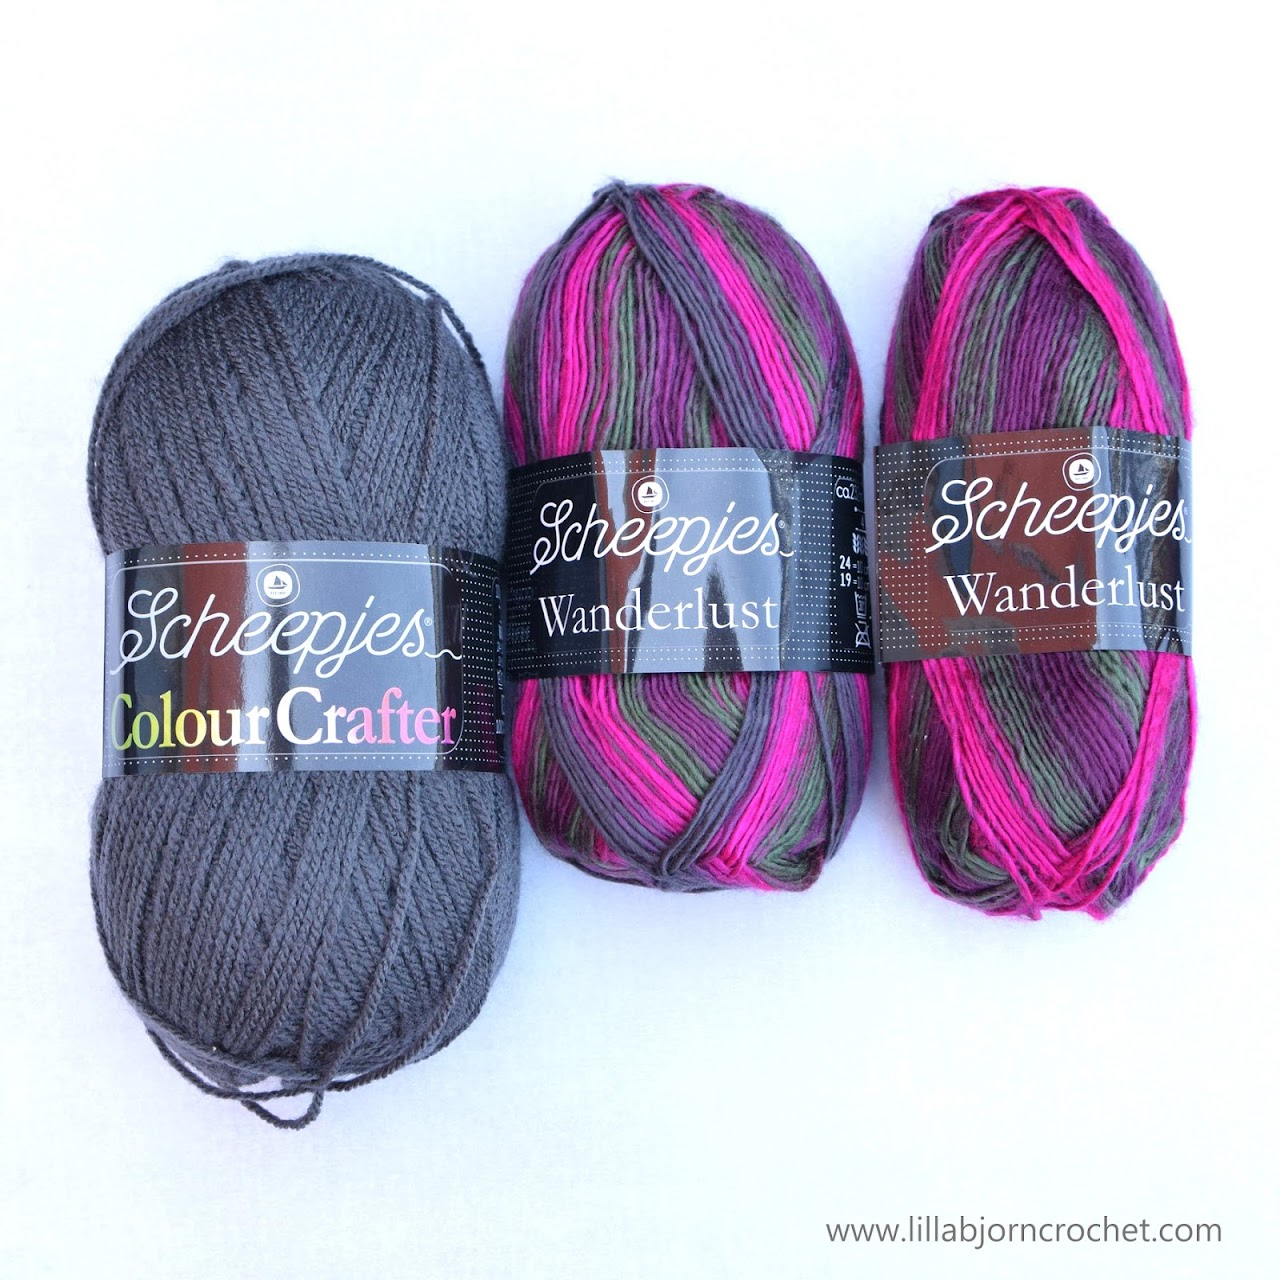 Wanderlust by Scheepjes is 100% soft acrylic variegated yarn - review on www.lillabjorncrochet.com